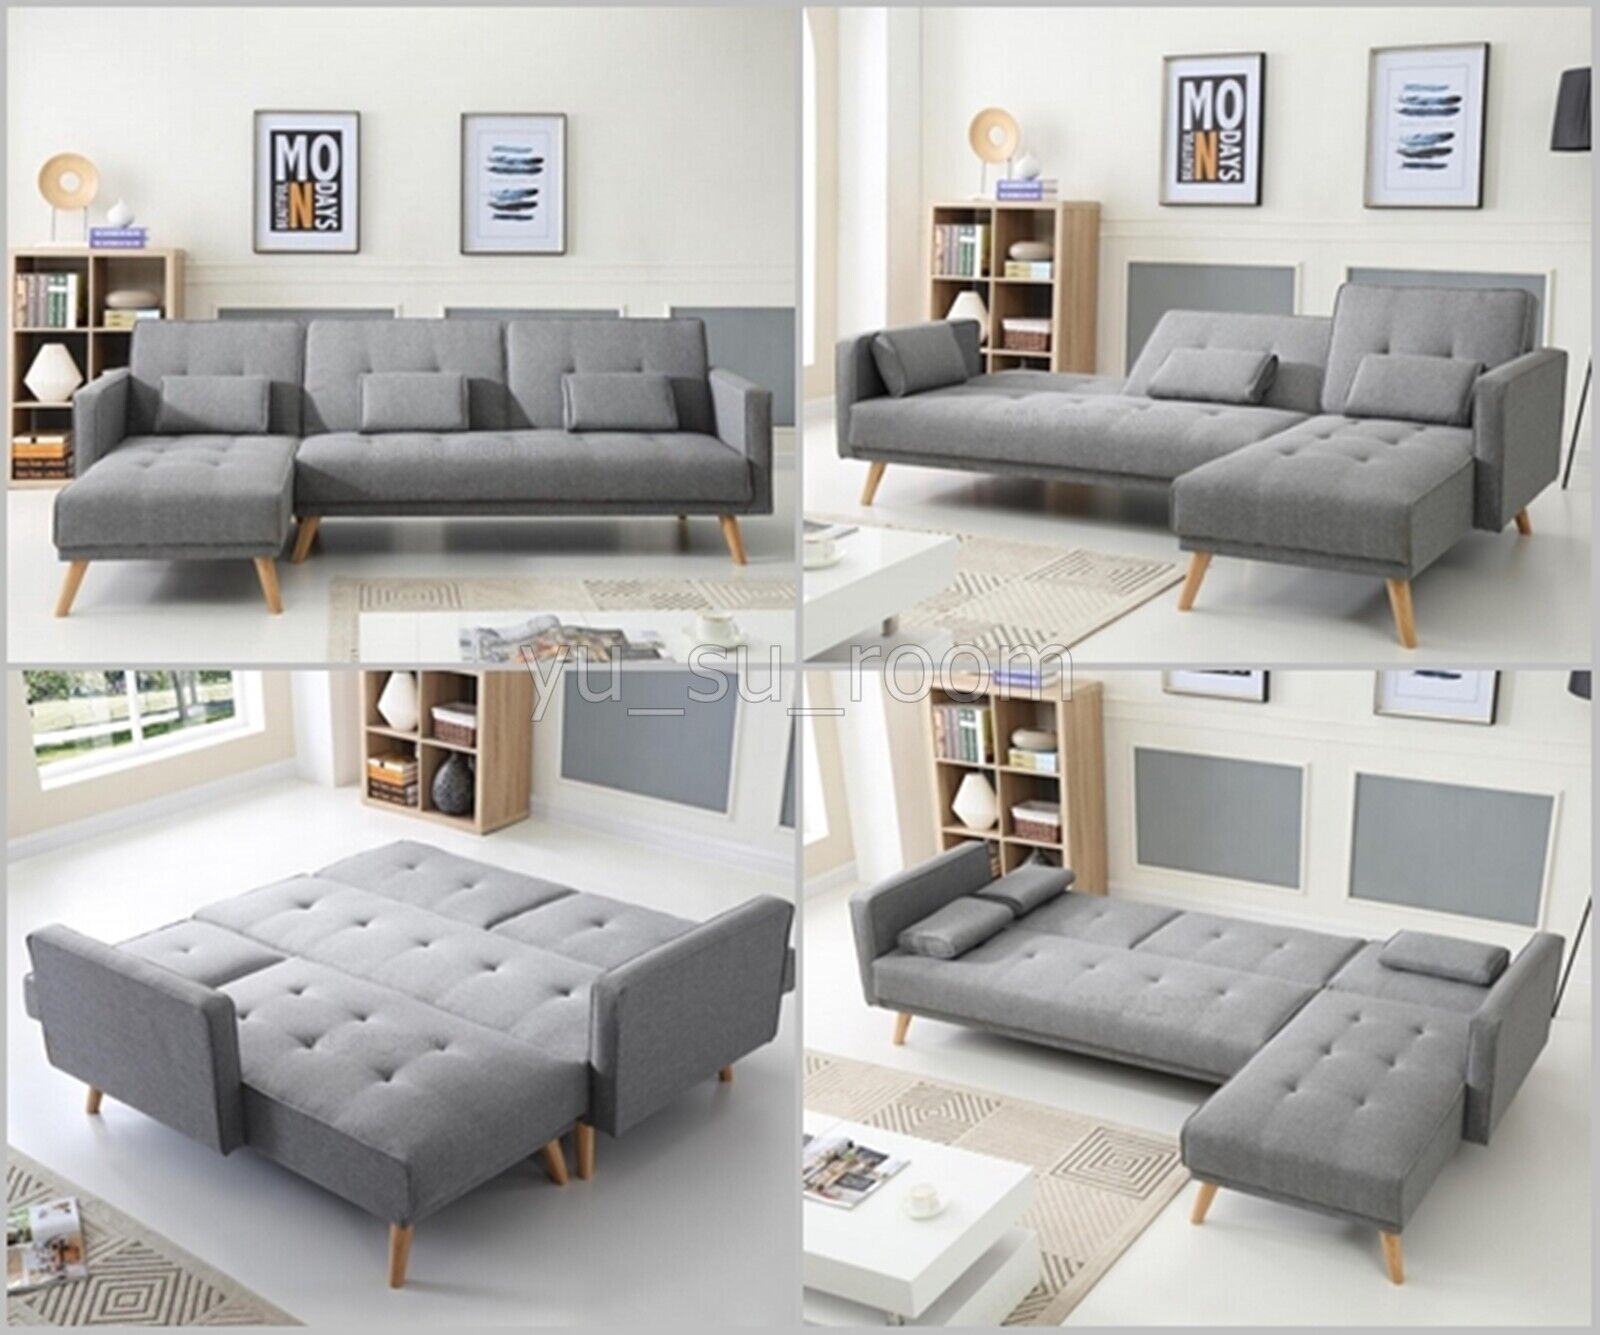 Details about Large Corner Sofa Bed 4 Seater Grey Fabric Settee L Shaped  Couch Chaise Recliner